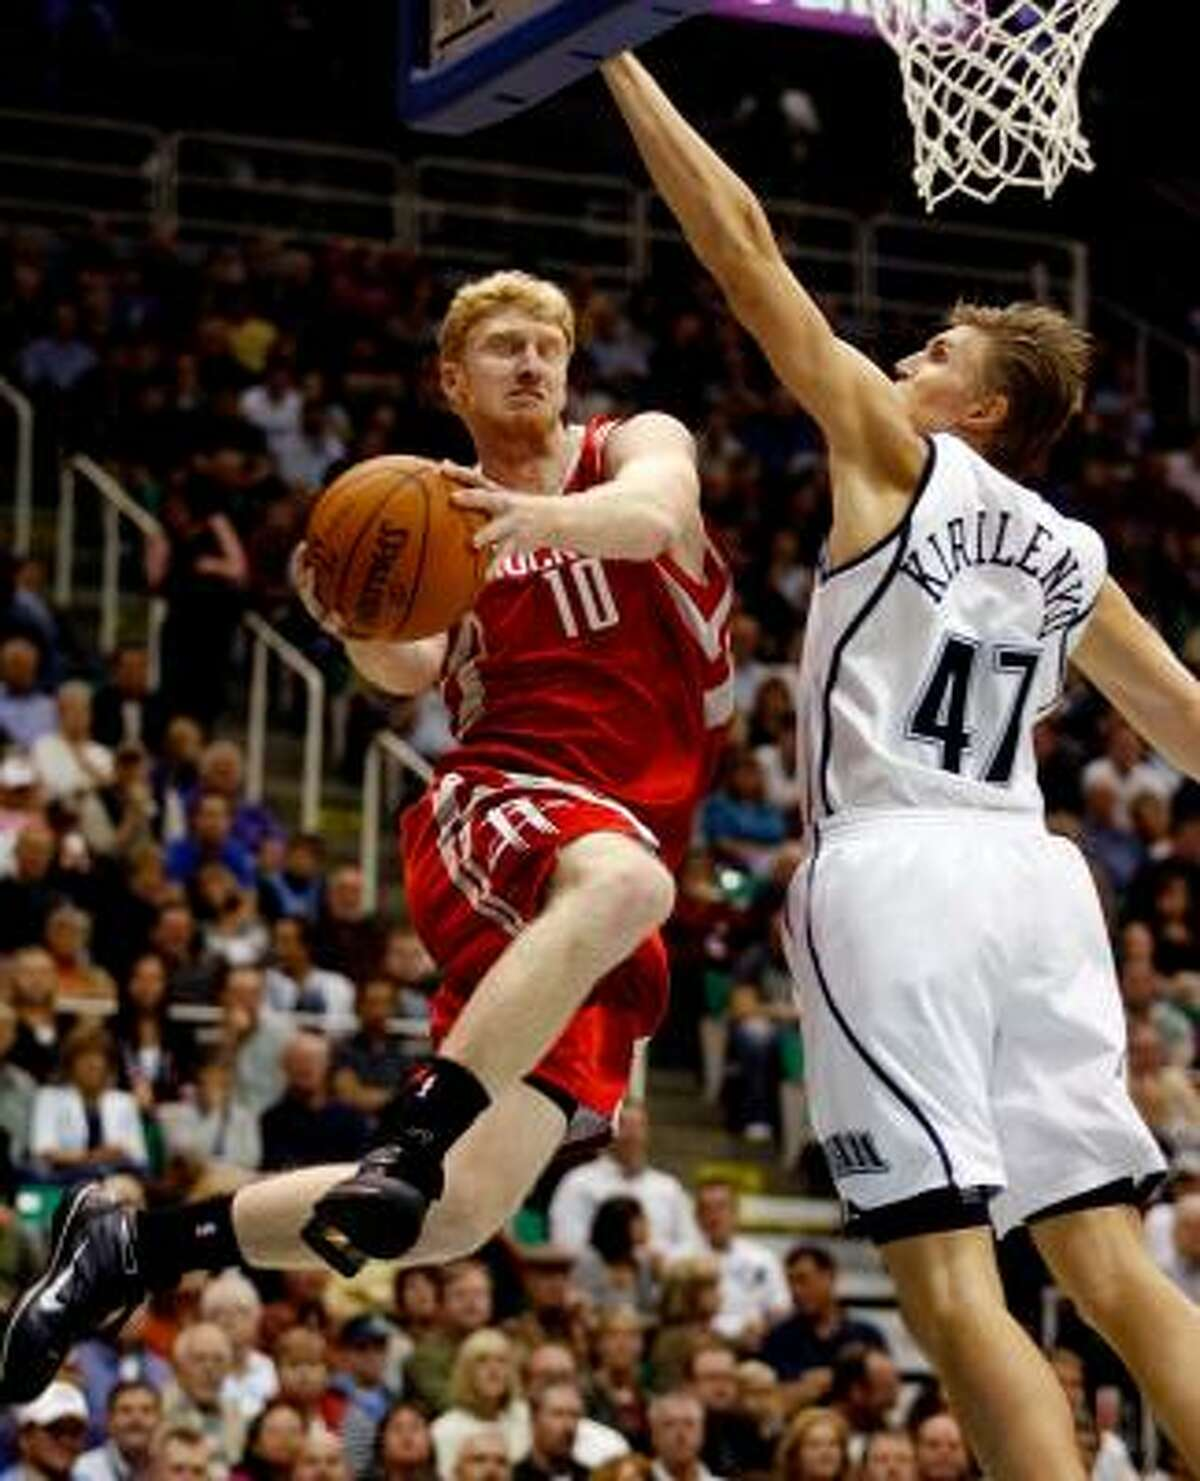 Rockets forward Chase Budinger goes to the basket past Jazz forward Andrei Kirilenko. Budinger had 17 points, a high for the rookie's young career.